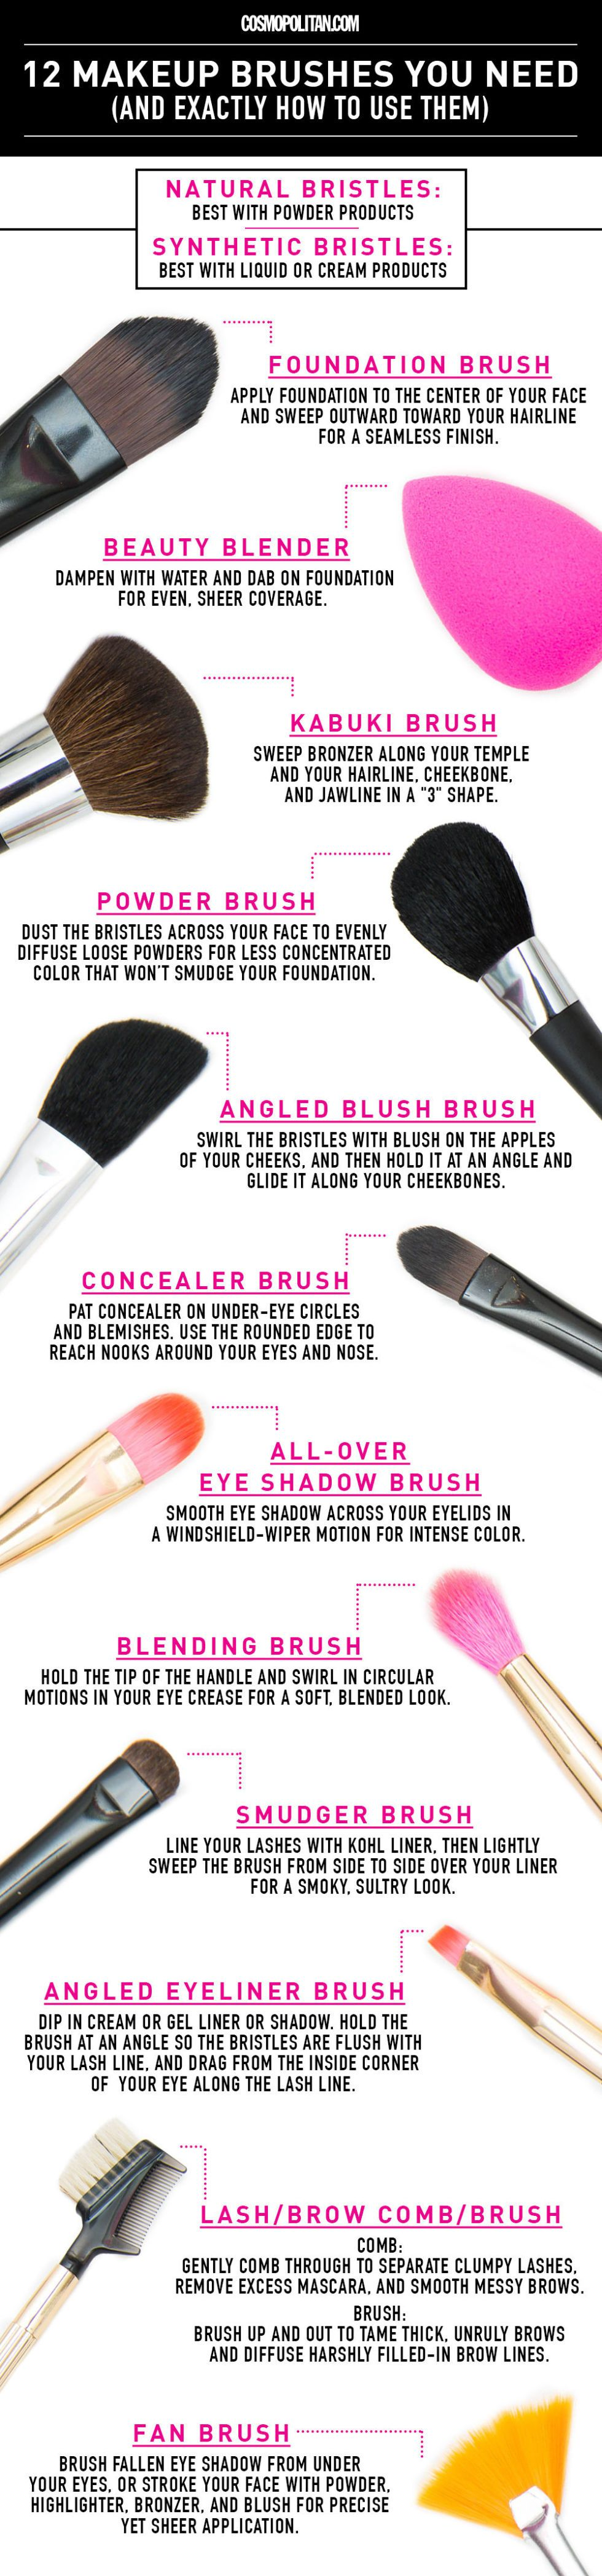 Makeup brushes and their use